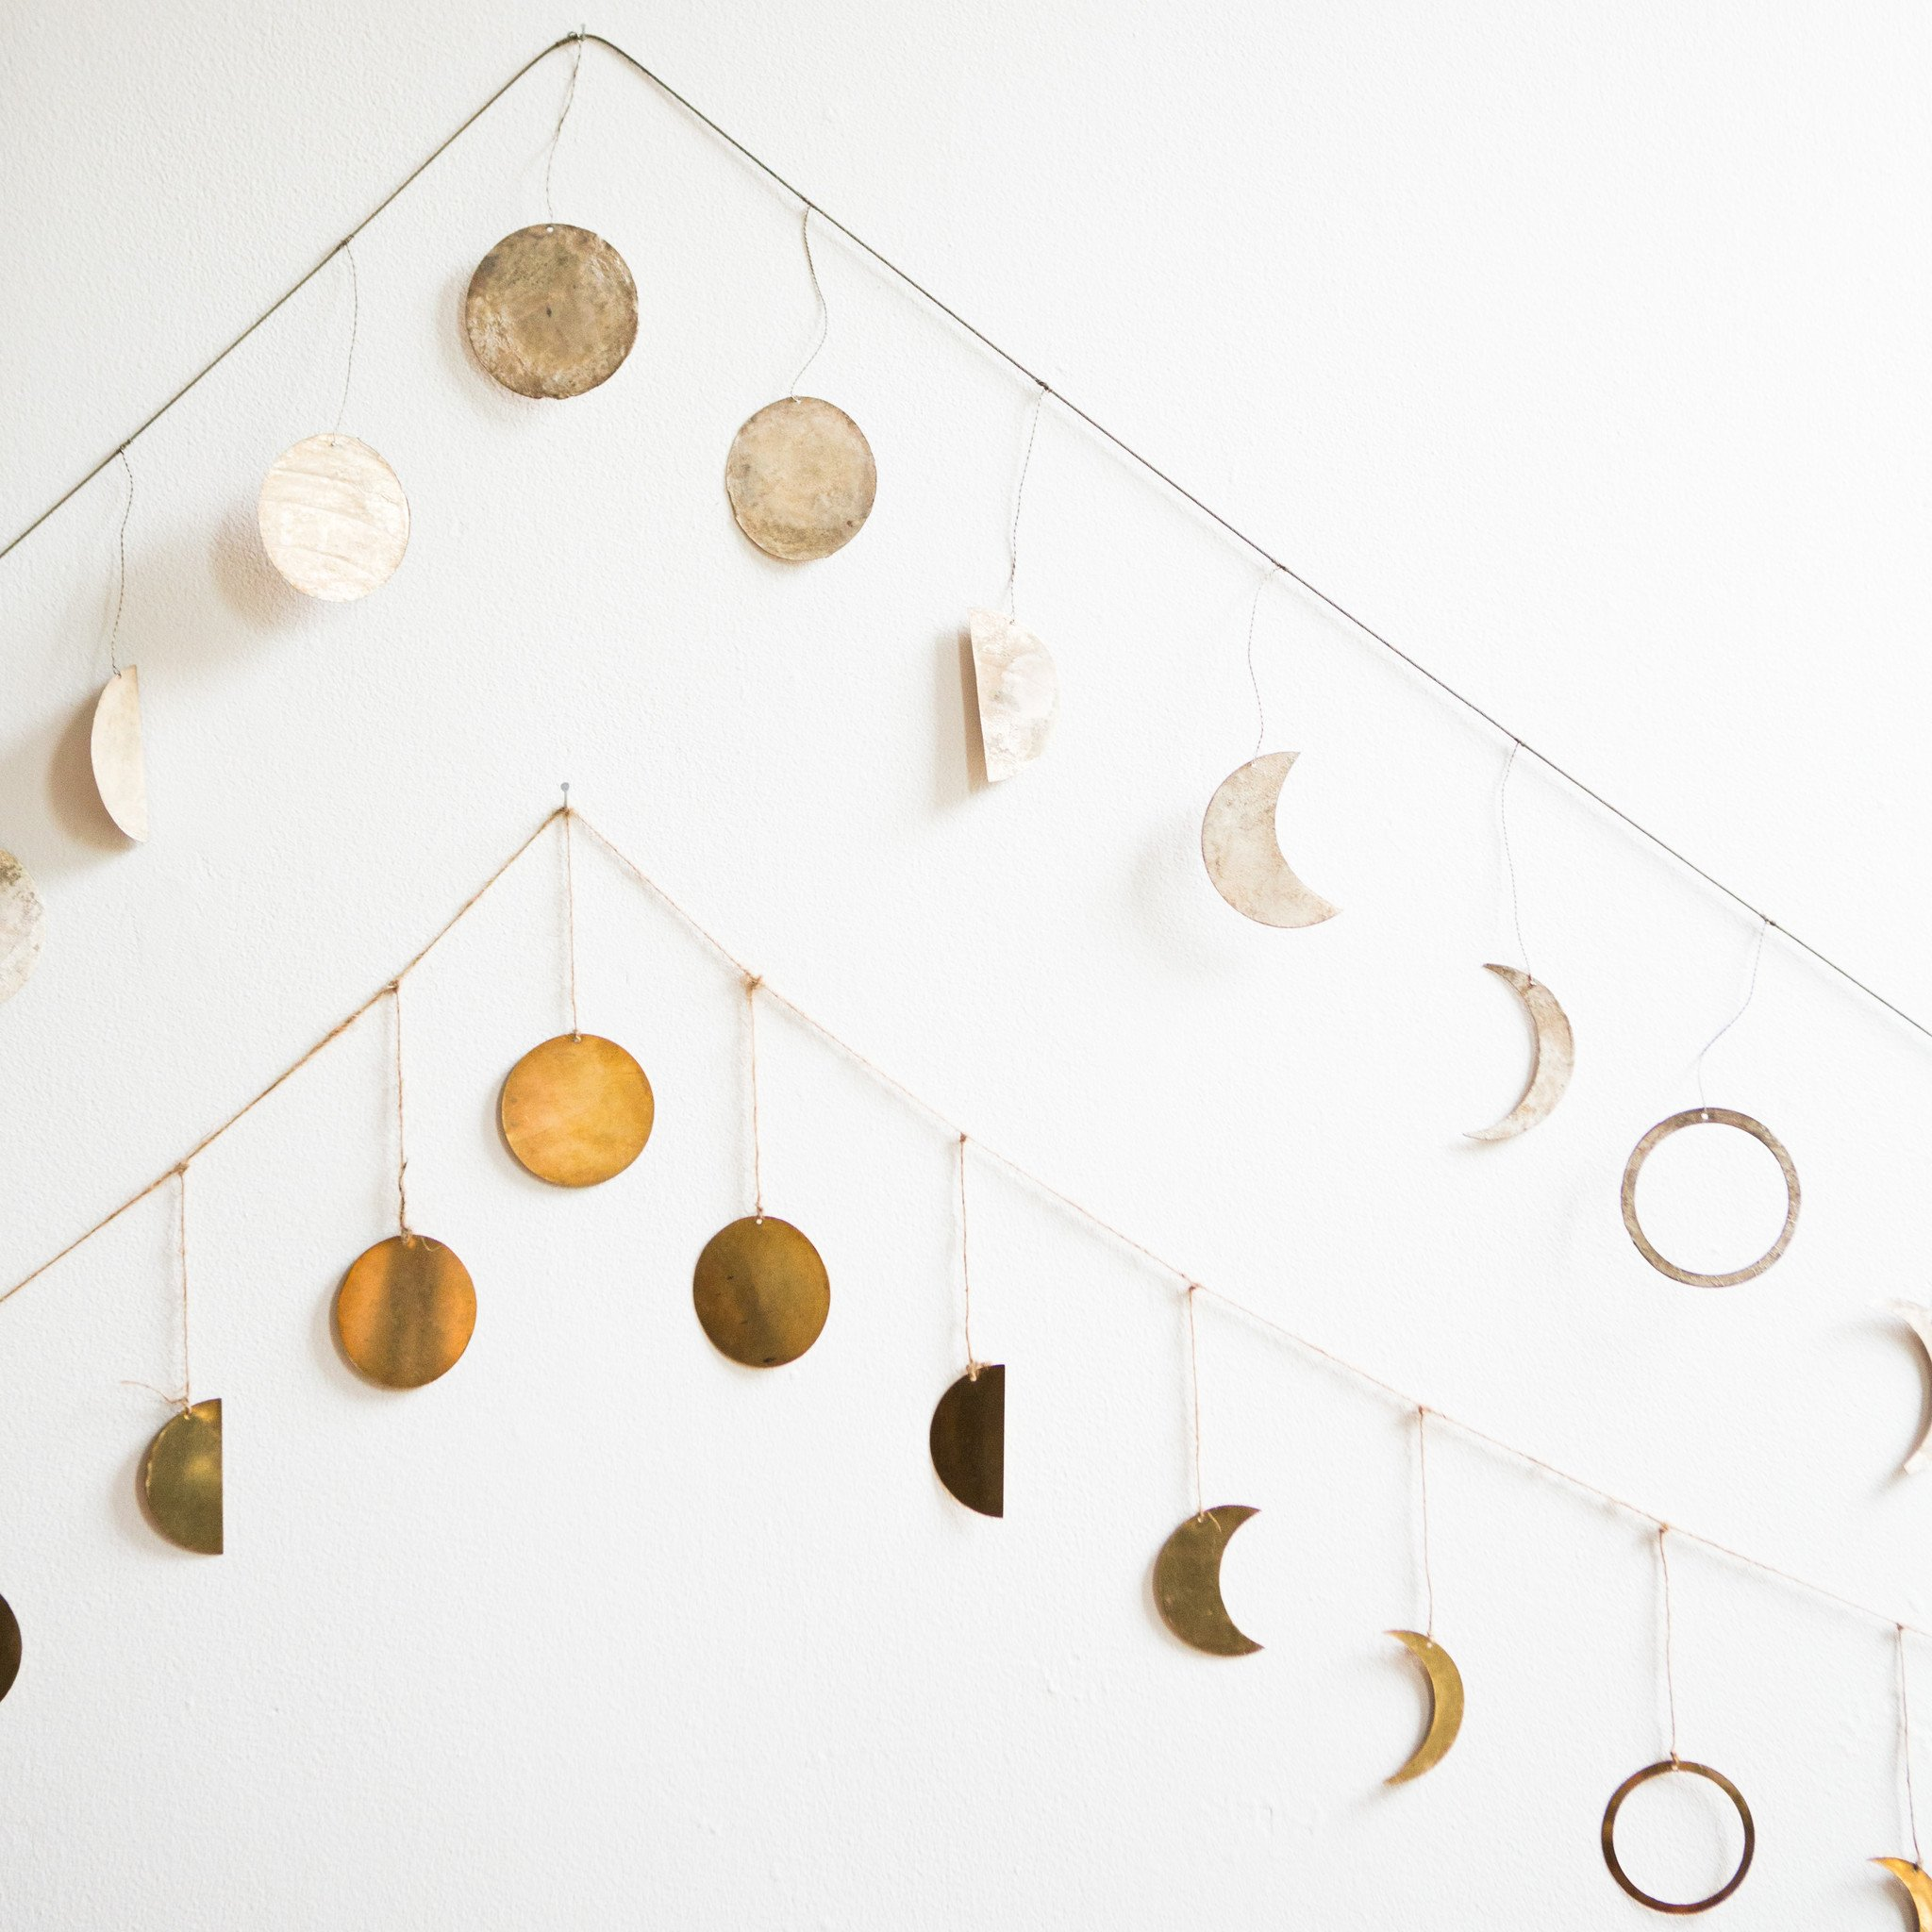 A pretty  Moon Phase Garland  to add some lunar gorgeousness to a special place